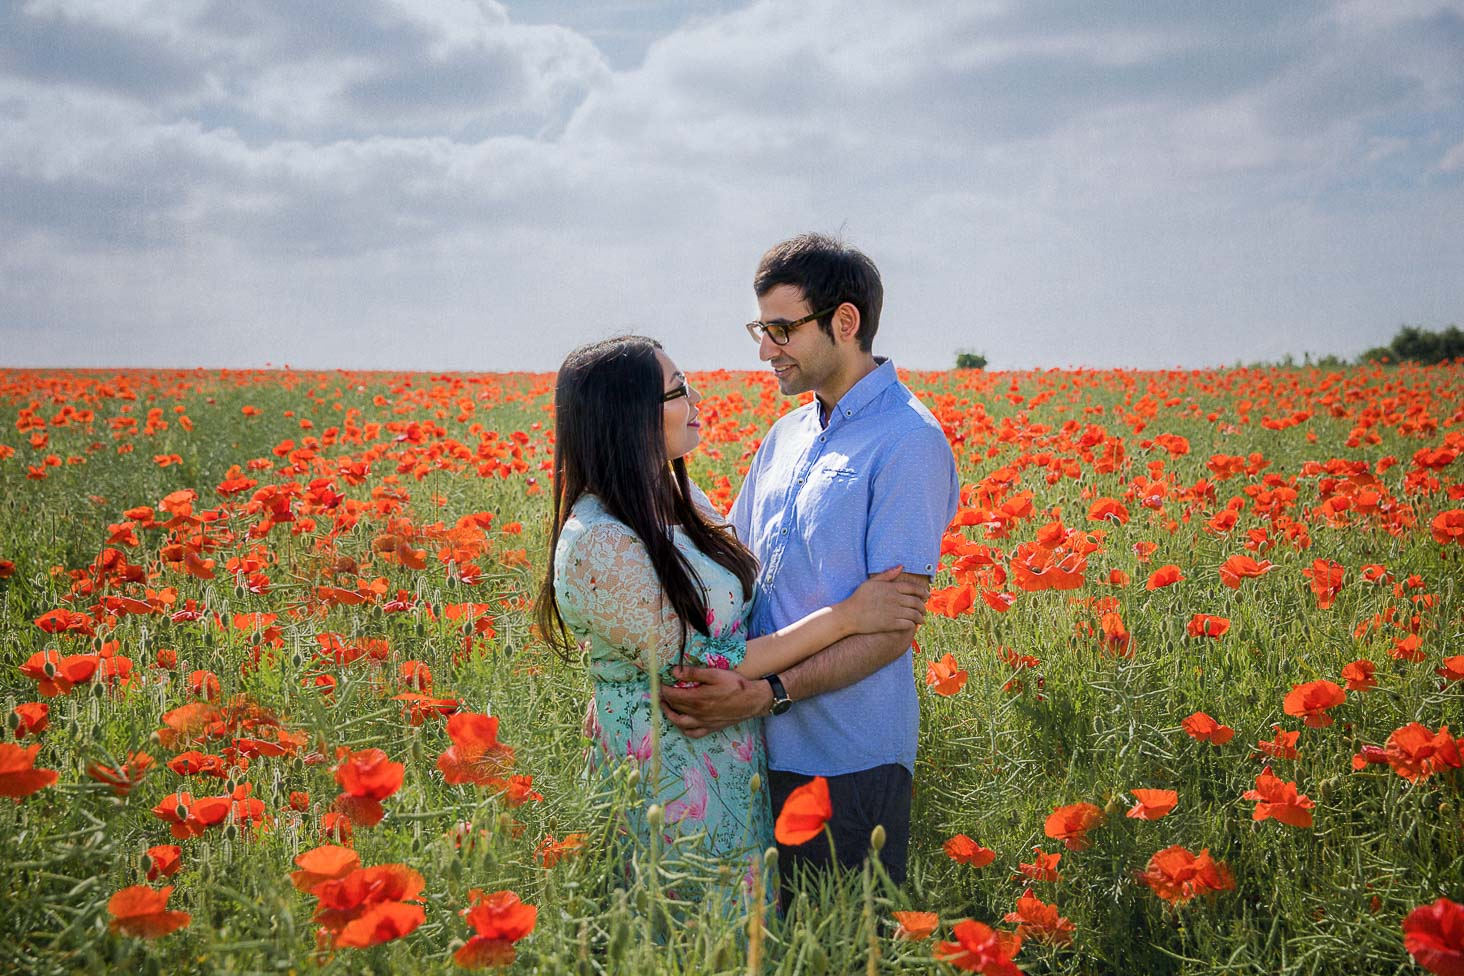 pre-wedding-engagement-shoot-bath-asian-wedding-photographer-london-poppy-poppies-field-natalia-smith-photography-0002.jpg